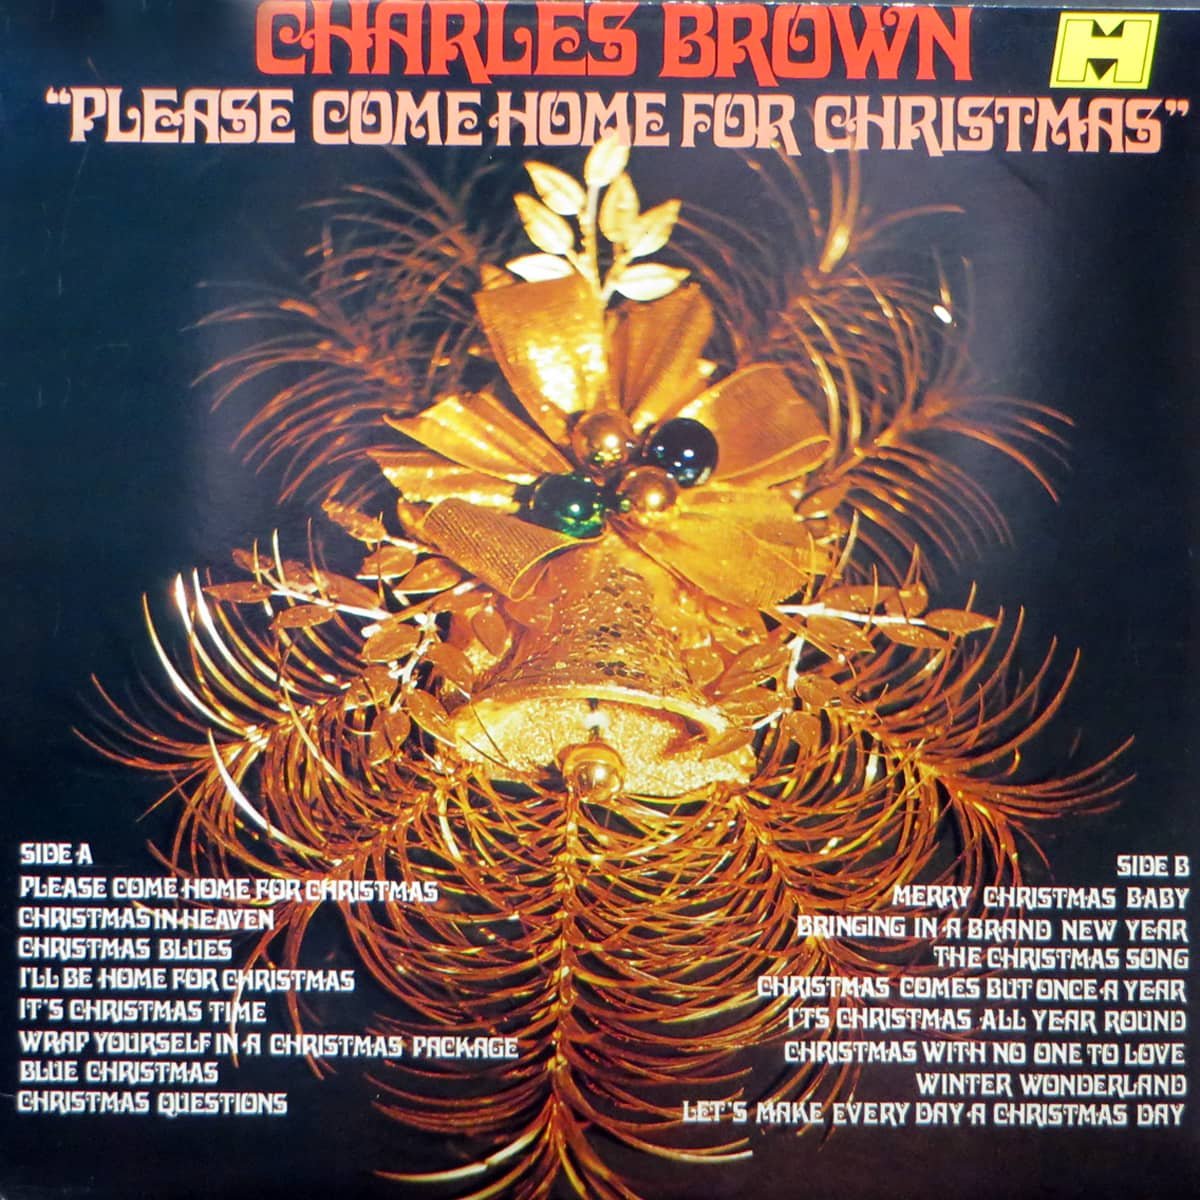 Charles brown please come home for christmas - Charles Brown Lp Please Come Home For Christmas Vinyl Lp Bear Family Records